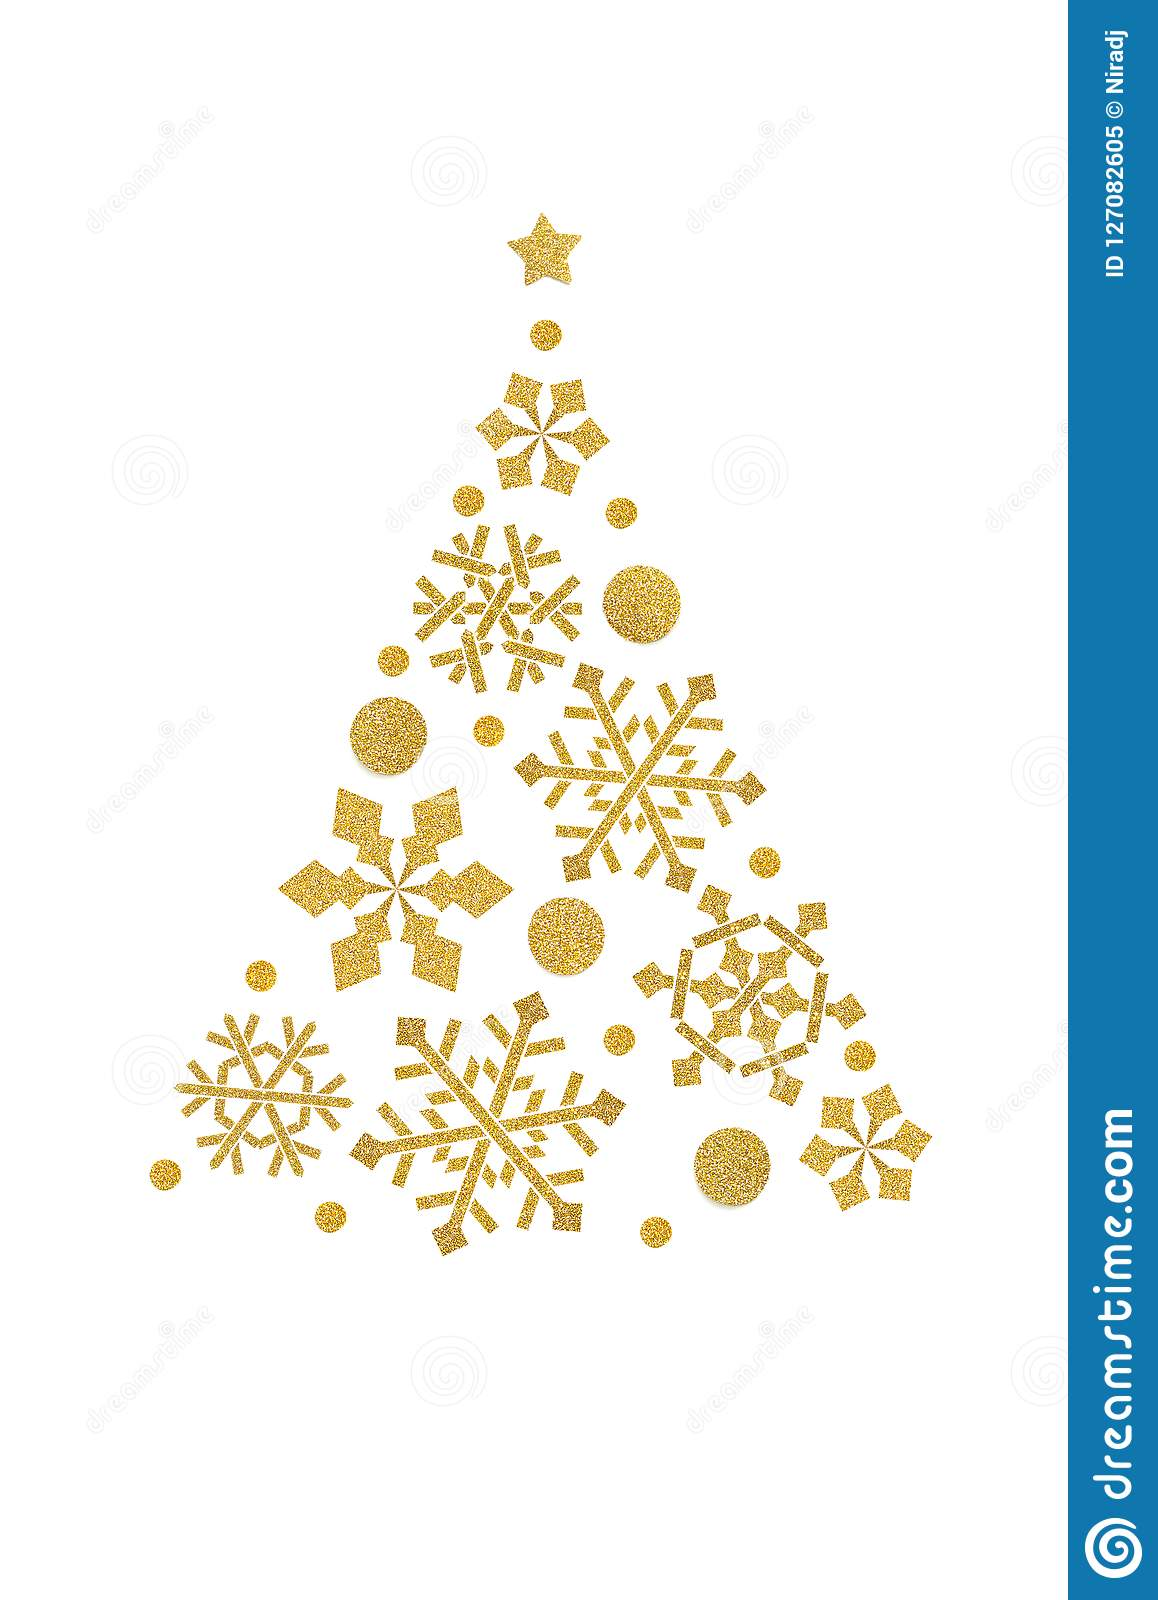 Snowflake christmas tree paper cut on white background